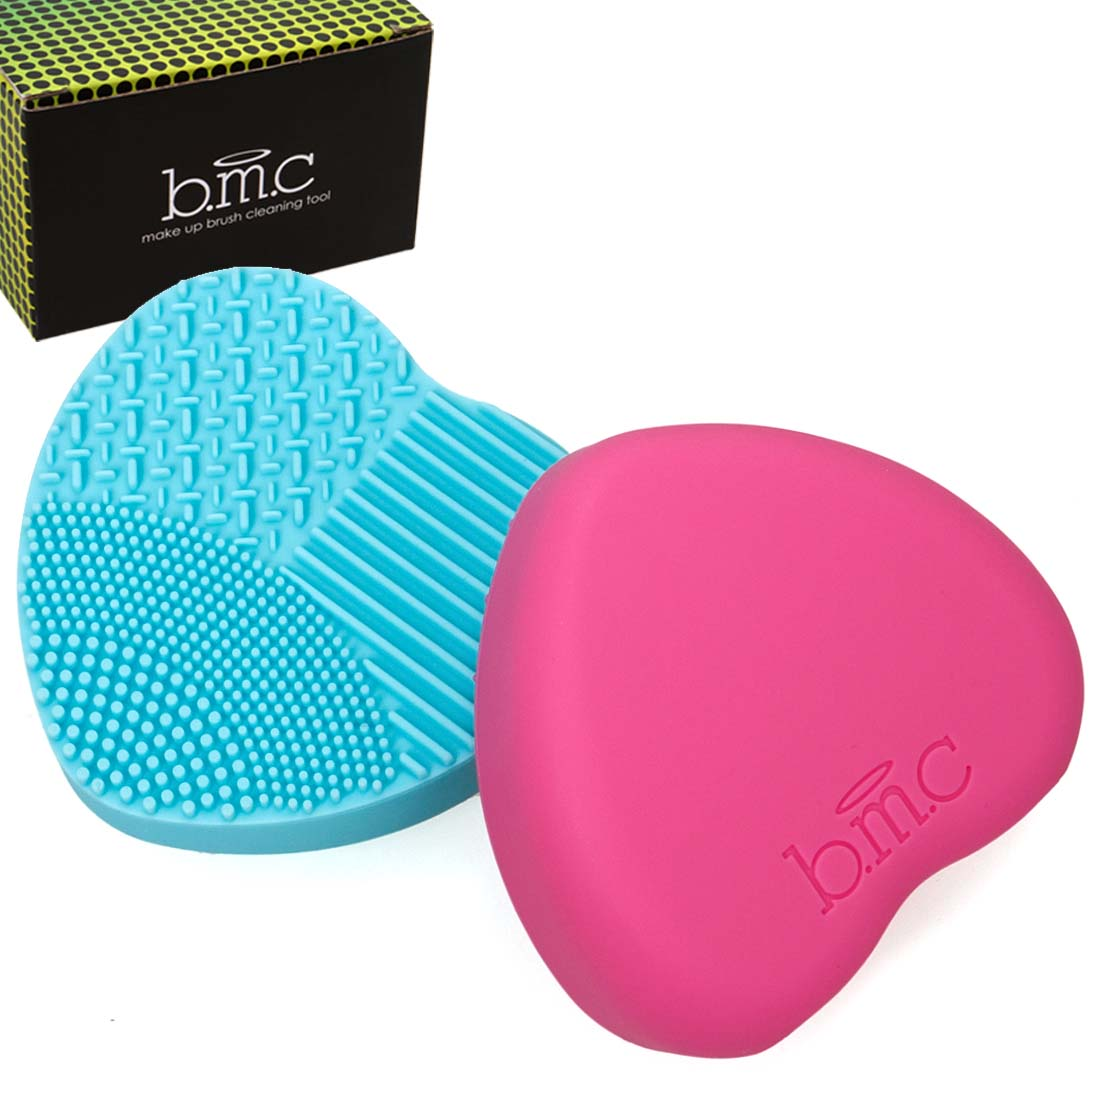 BMC 2pc Heart Shaped Silicone Multi Texture Surface Make Up Brush Cleaning Tool Set